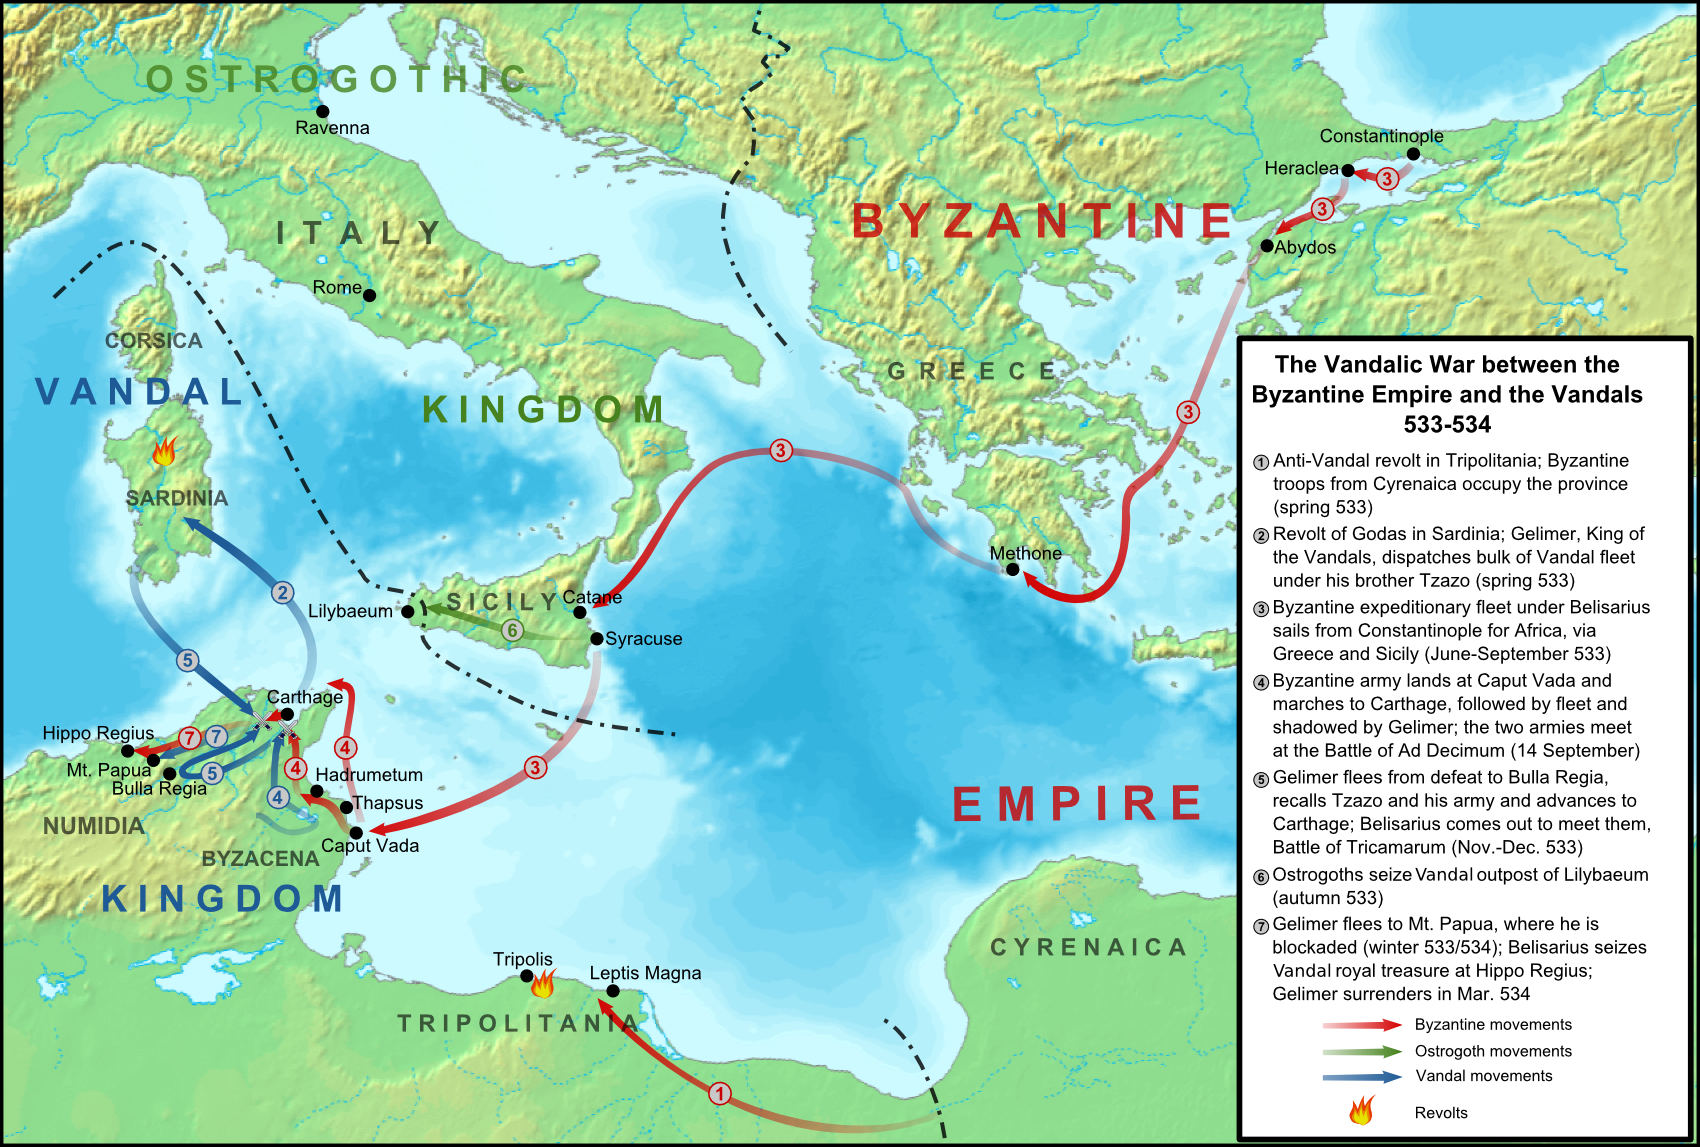 an analysis of the influence of octavian augustus on the roman empire The roman empire influenced many aspects of western culture and civilization   born gaius octavius, augustus was the great-nephew of julius caesar and   while developing the skills needed to refine your research, writing, analysis, and .